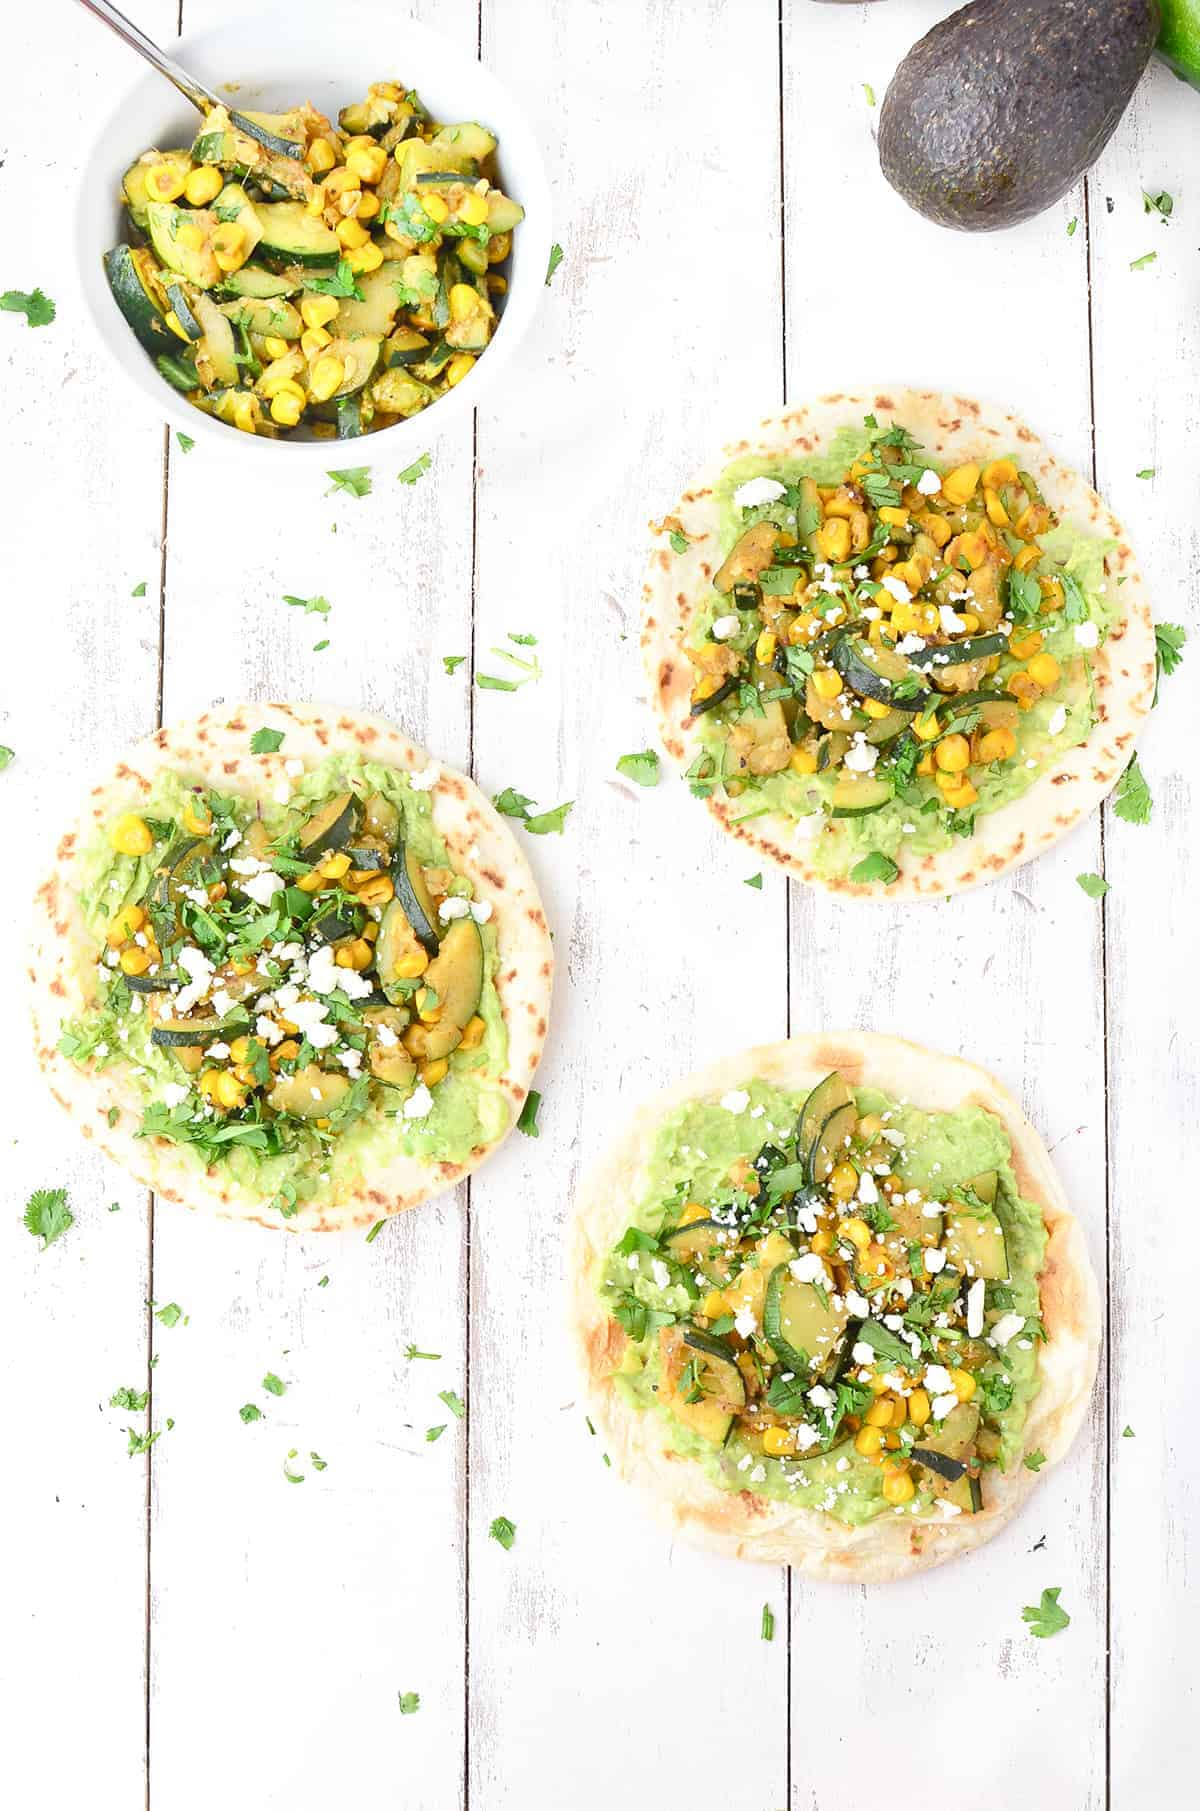 Zucchini and Corn Tacos! These vegetarian tacos are so healthy and filling! You've gotta try them. Vegetarian Mexican Food that's ready in less than 30 minutes! | www.delishknowledge.com